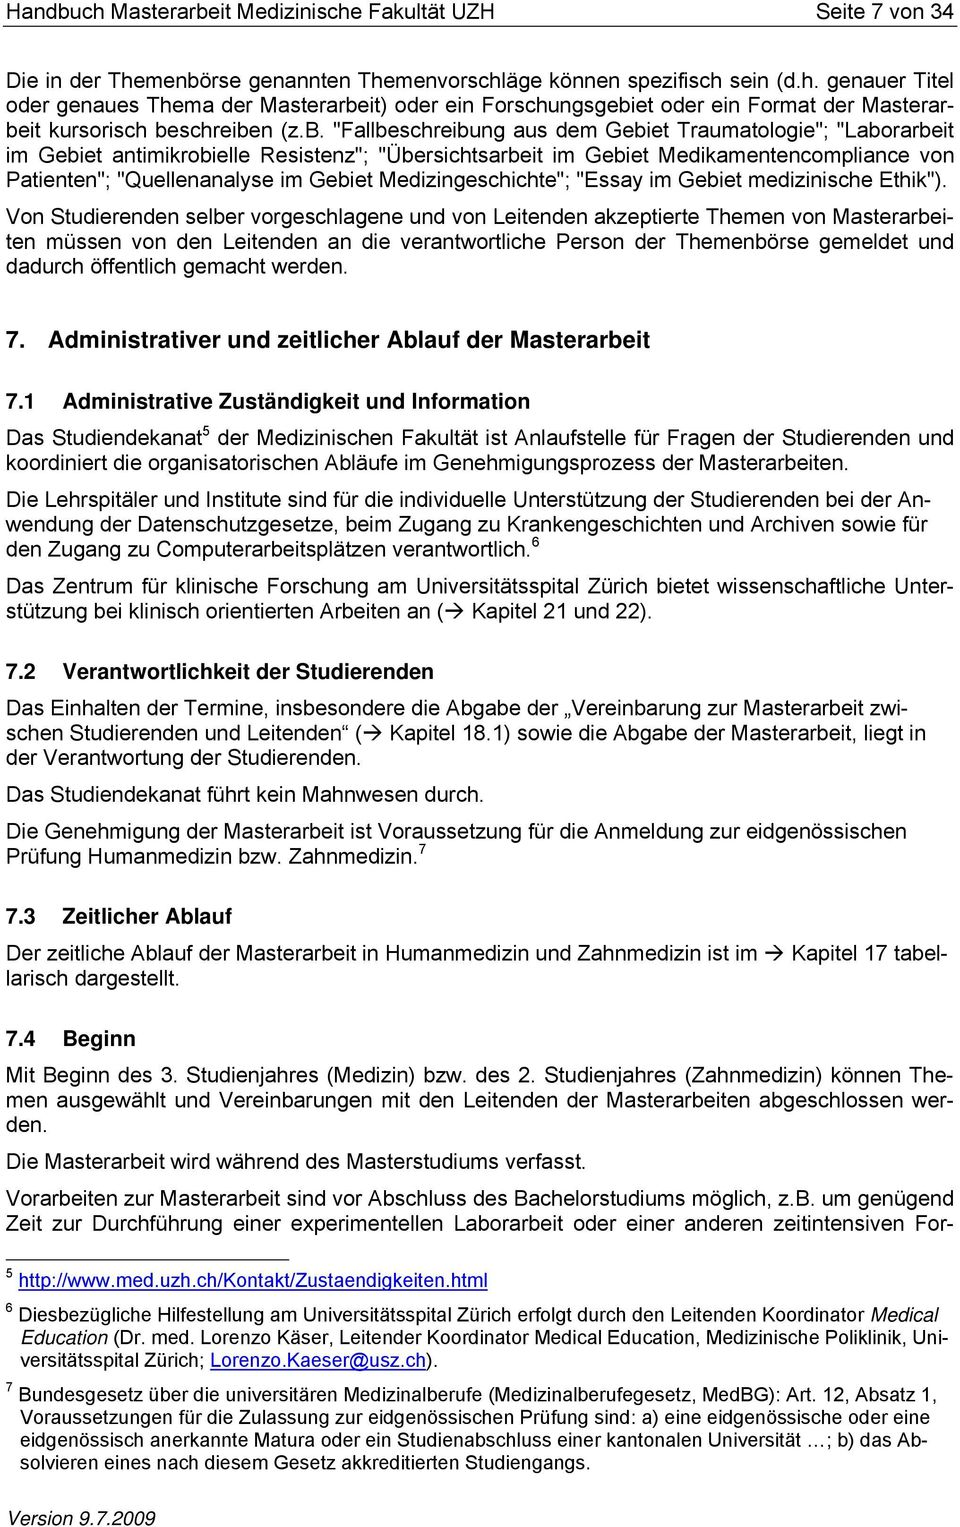 Masterarbeiten uzh medizin bachelor arts job opportunities